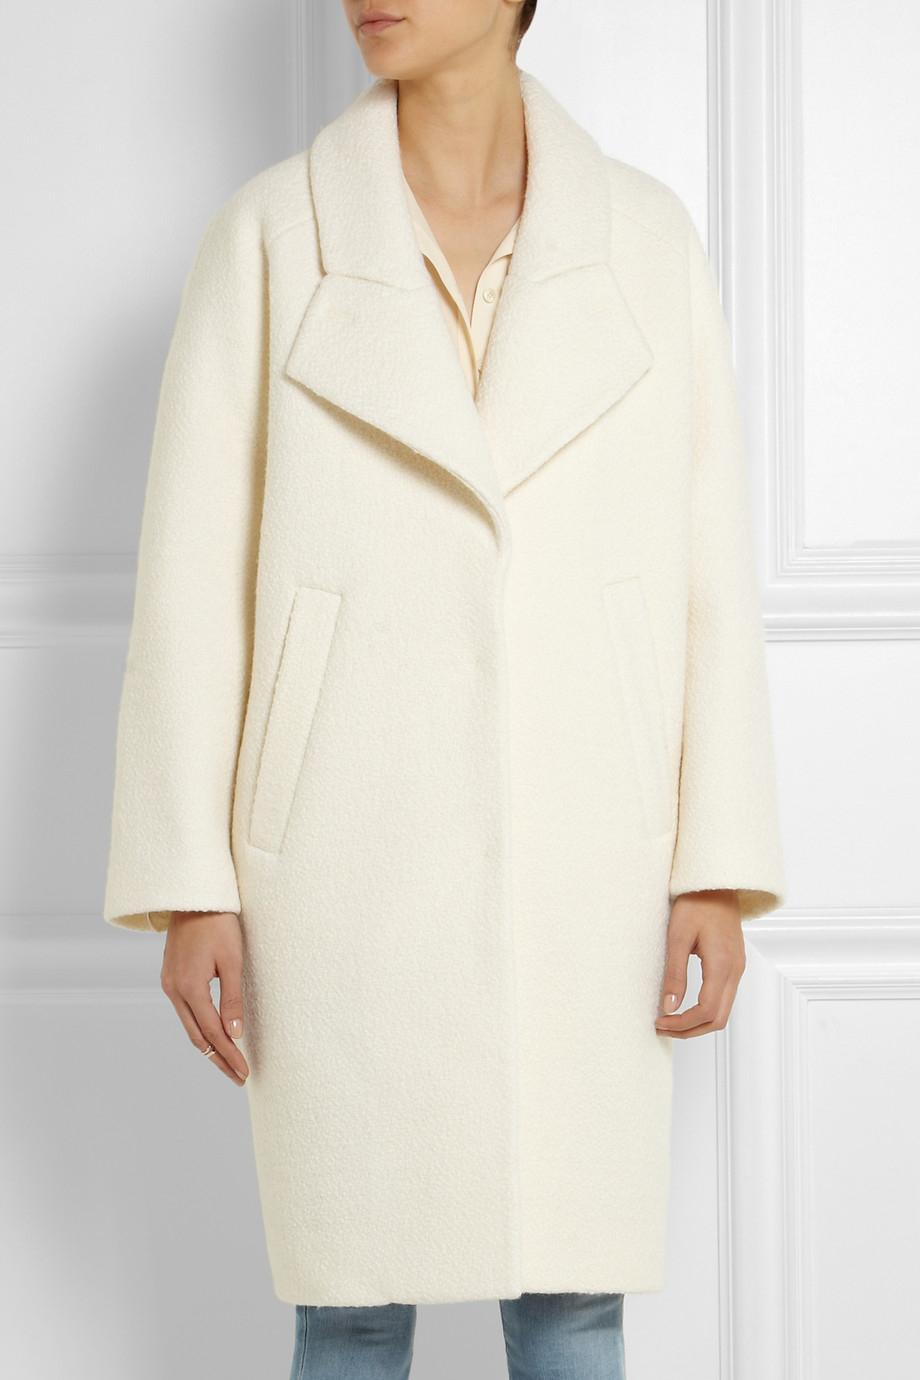 Carven Woolbouclé Cocoon Coat in White | Lyst